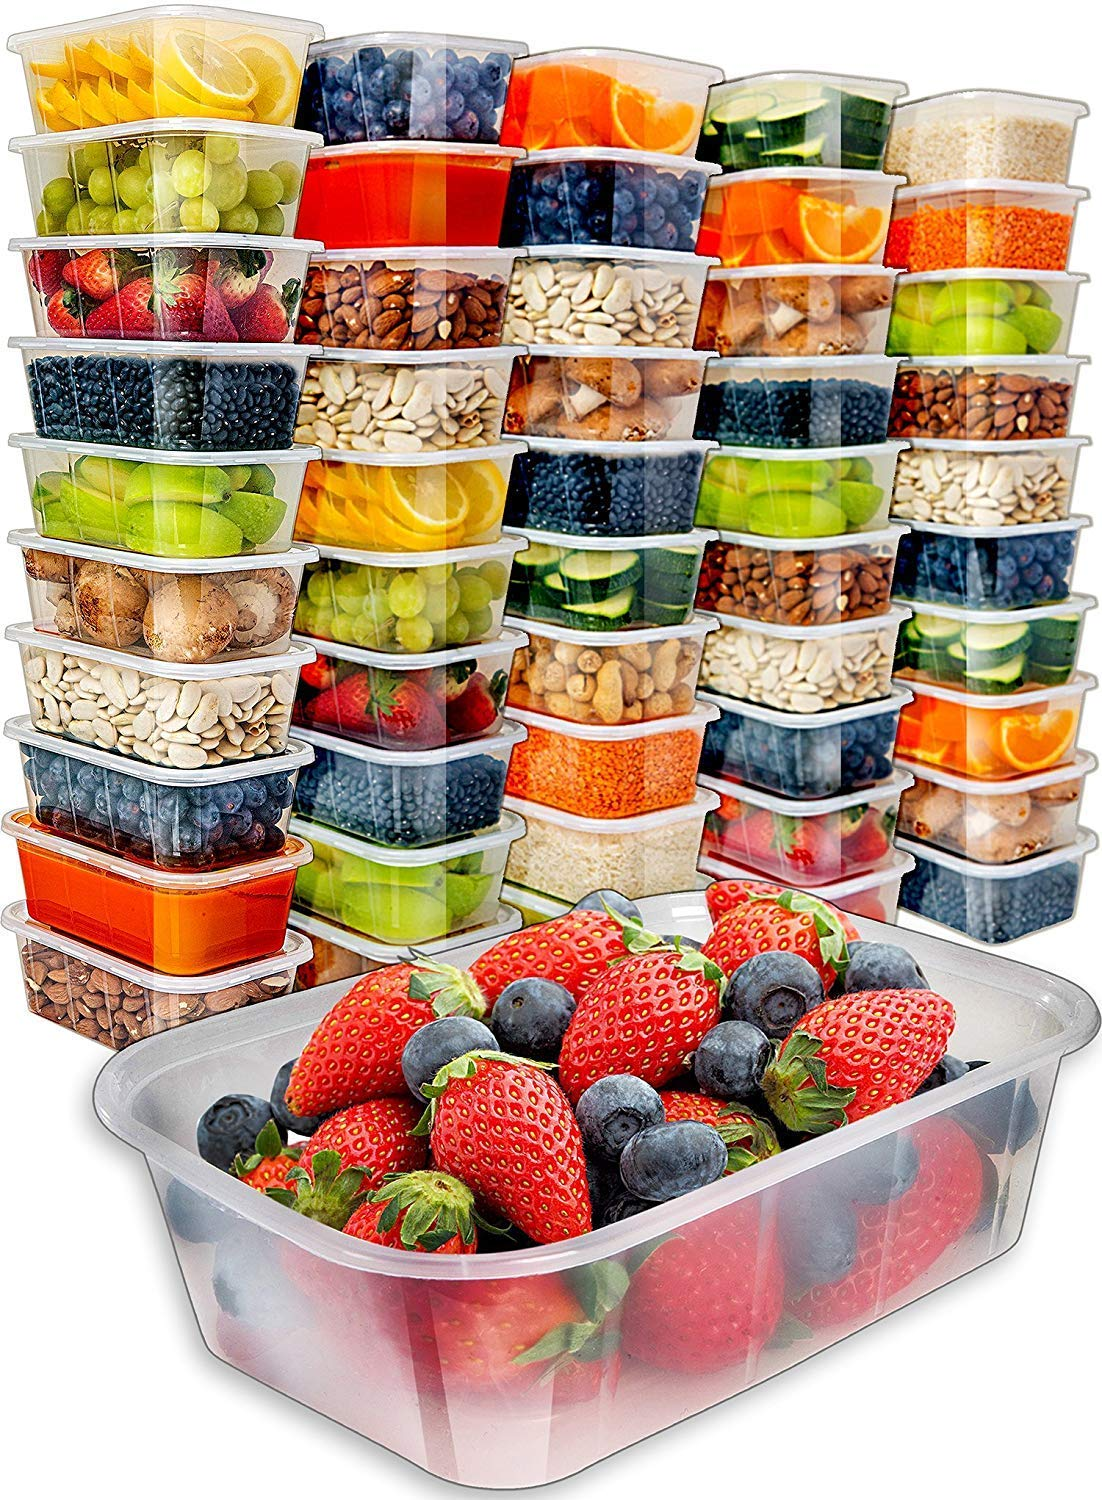 Food Storage Containers with Lids (50 Pack, 25 Ounce) - Food Containers Meal Prep Plastic Containers with Lids Food Prep Containers Deli Containers with Lids Freezer Containers by Prep Naturals by Prep Naturals